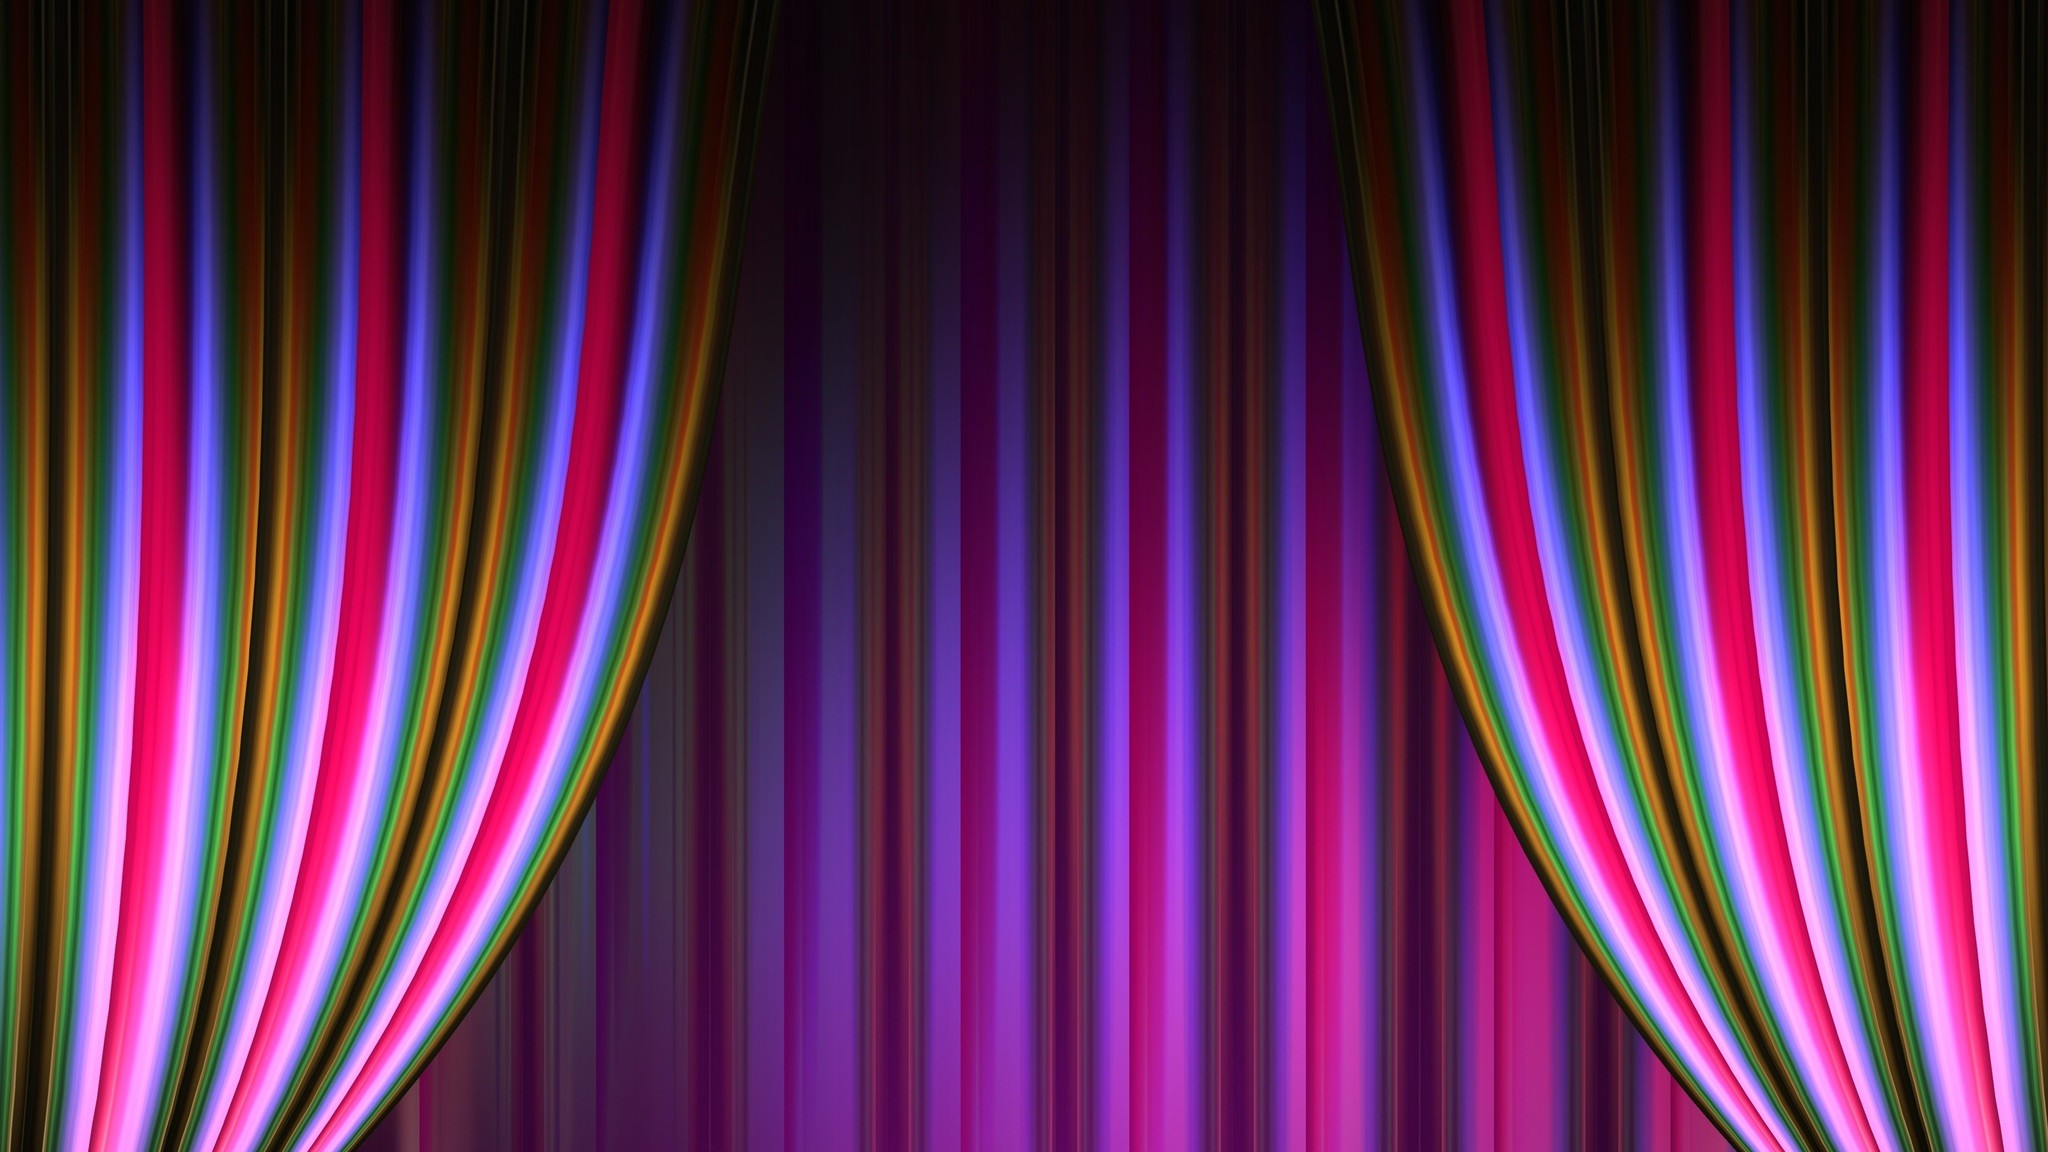 2048x1152 theater-curtain-cinema-abstract-nl.jpg